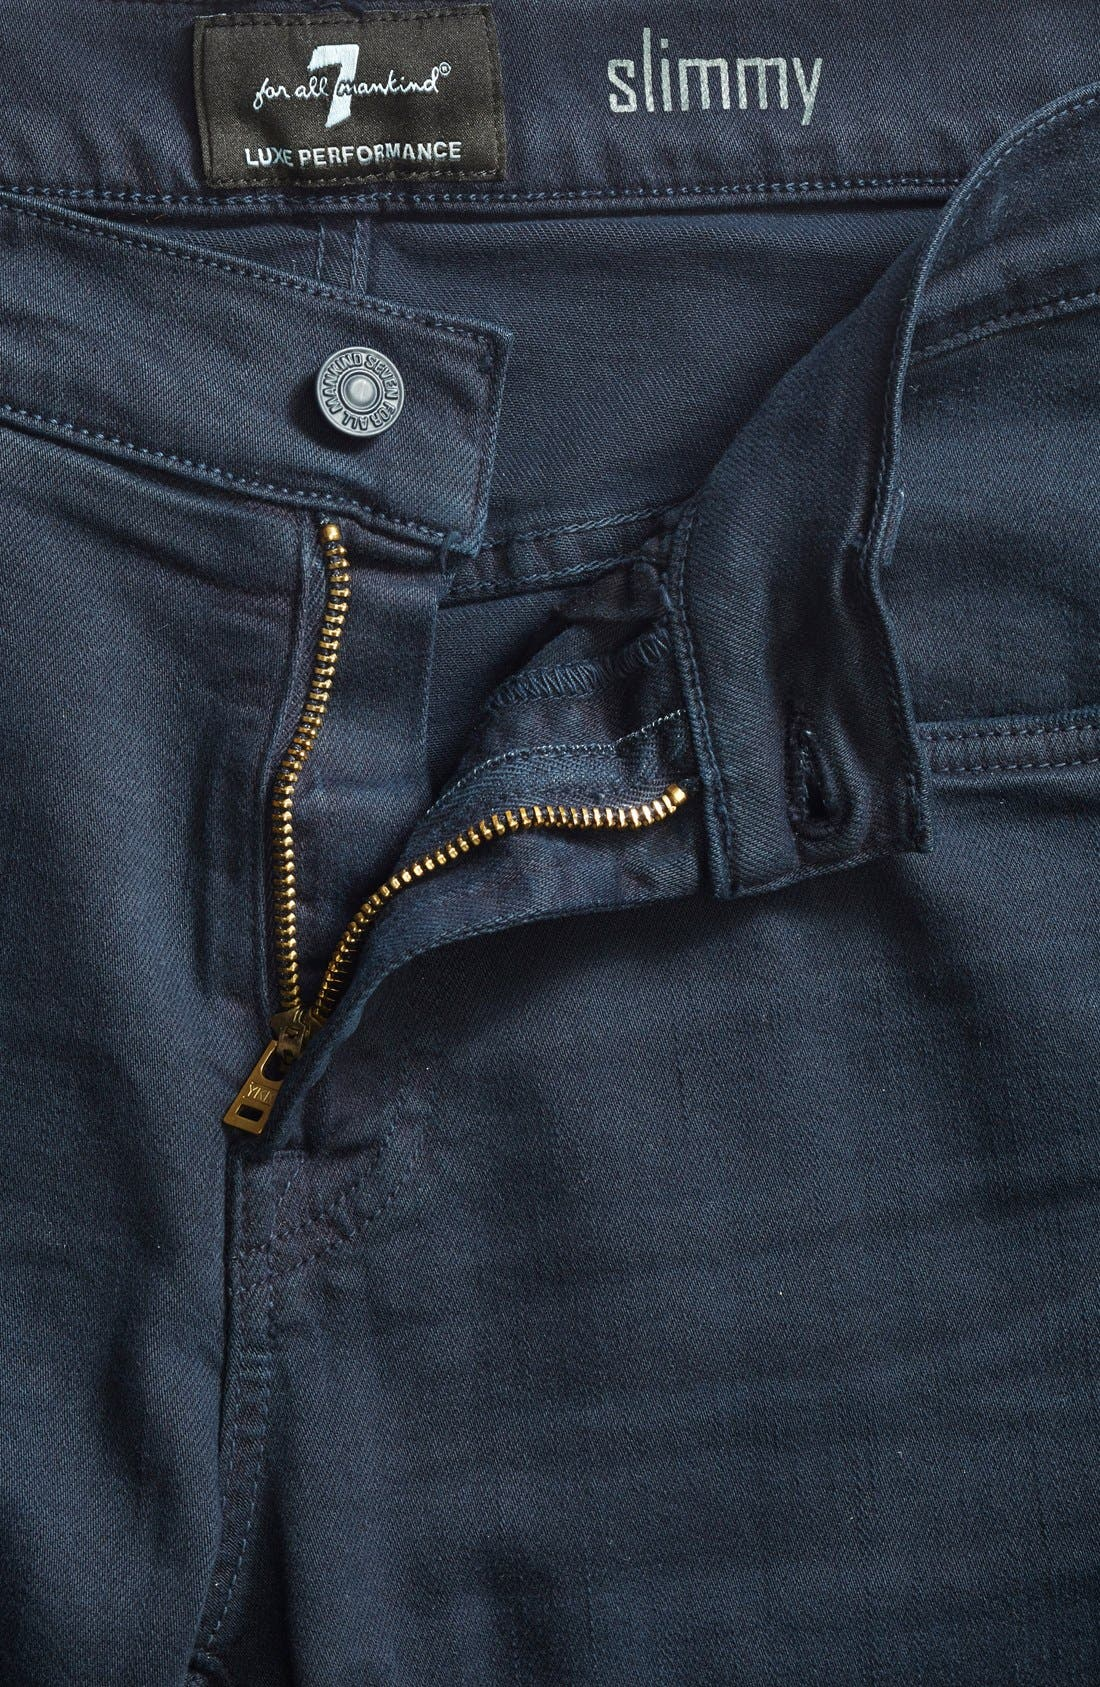 'Slimmy - Luxe Performance' Slim Fit Jeans,                             Alternate thumbnail 4, color,